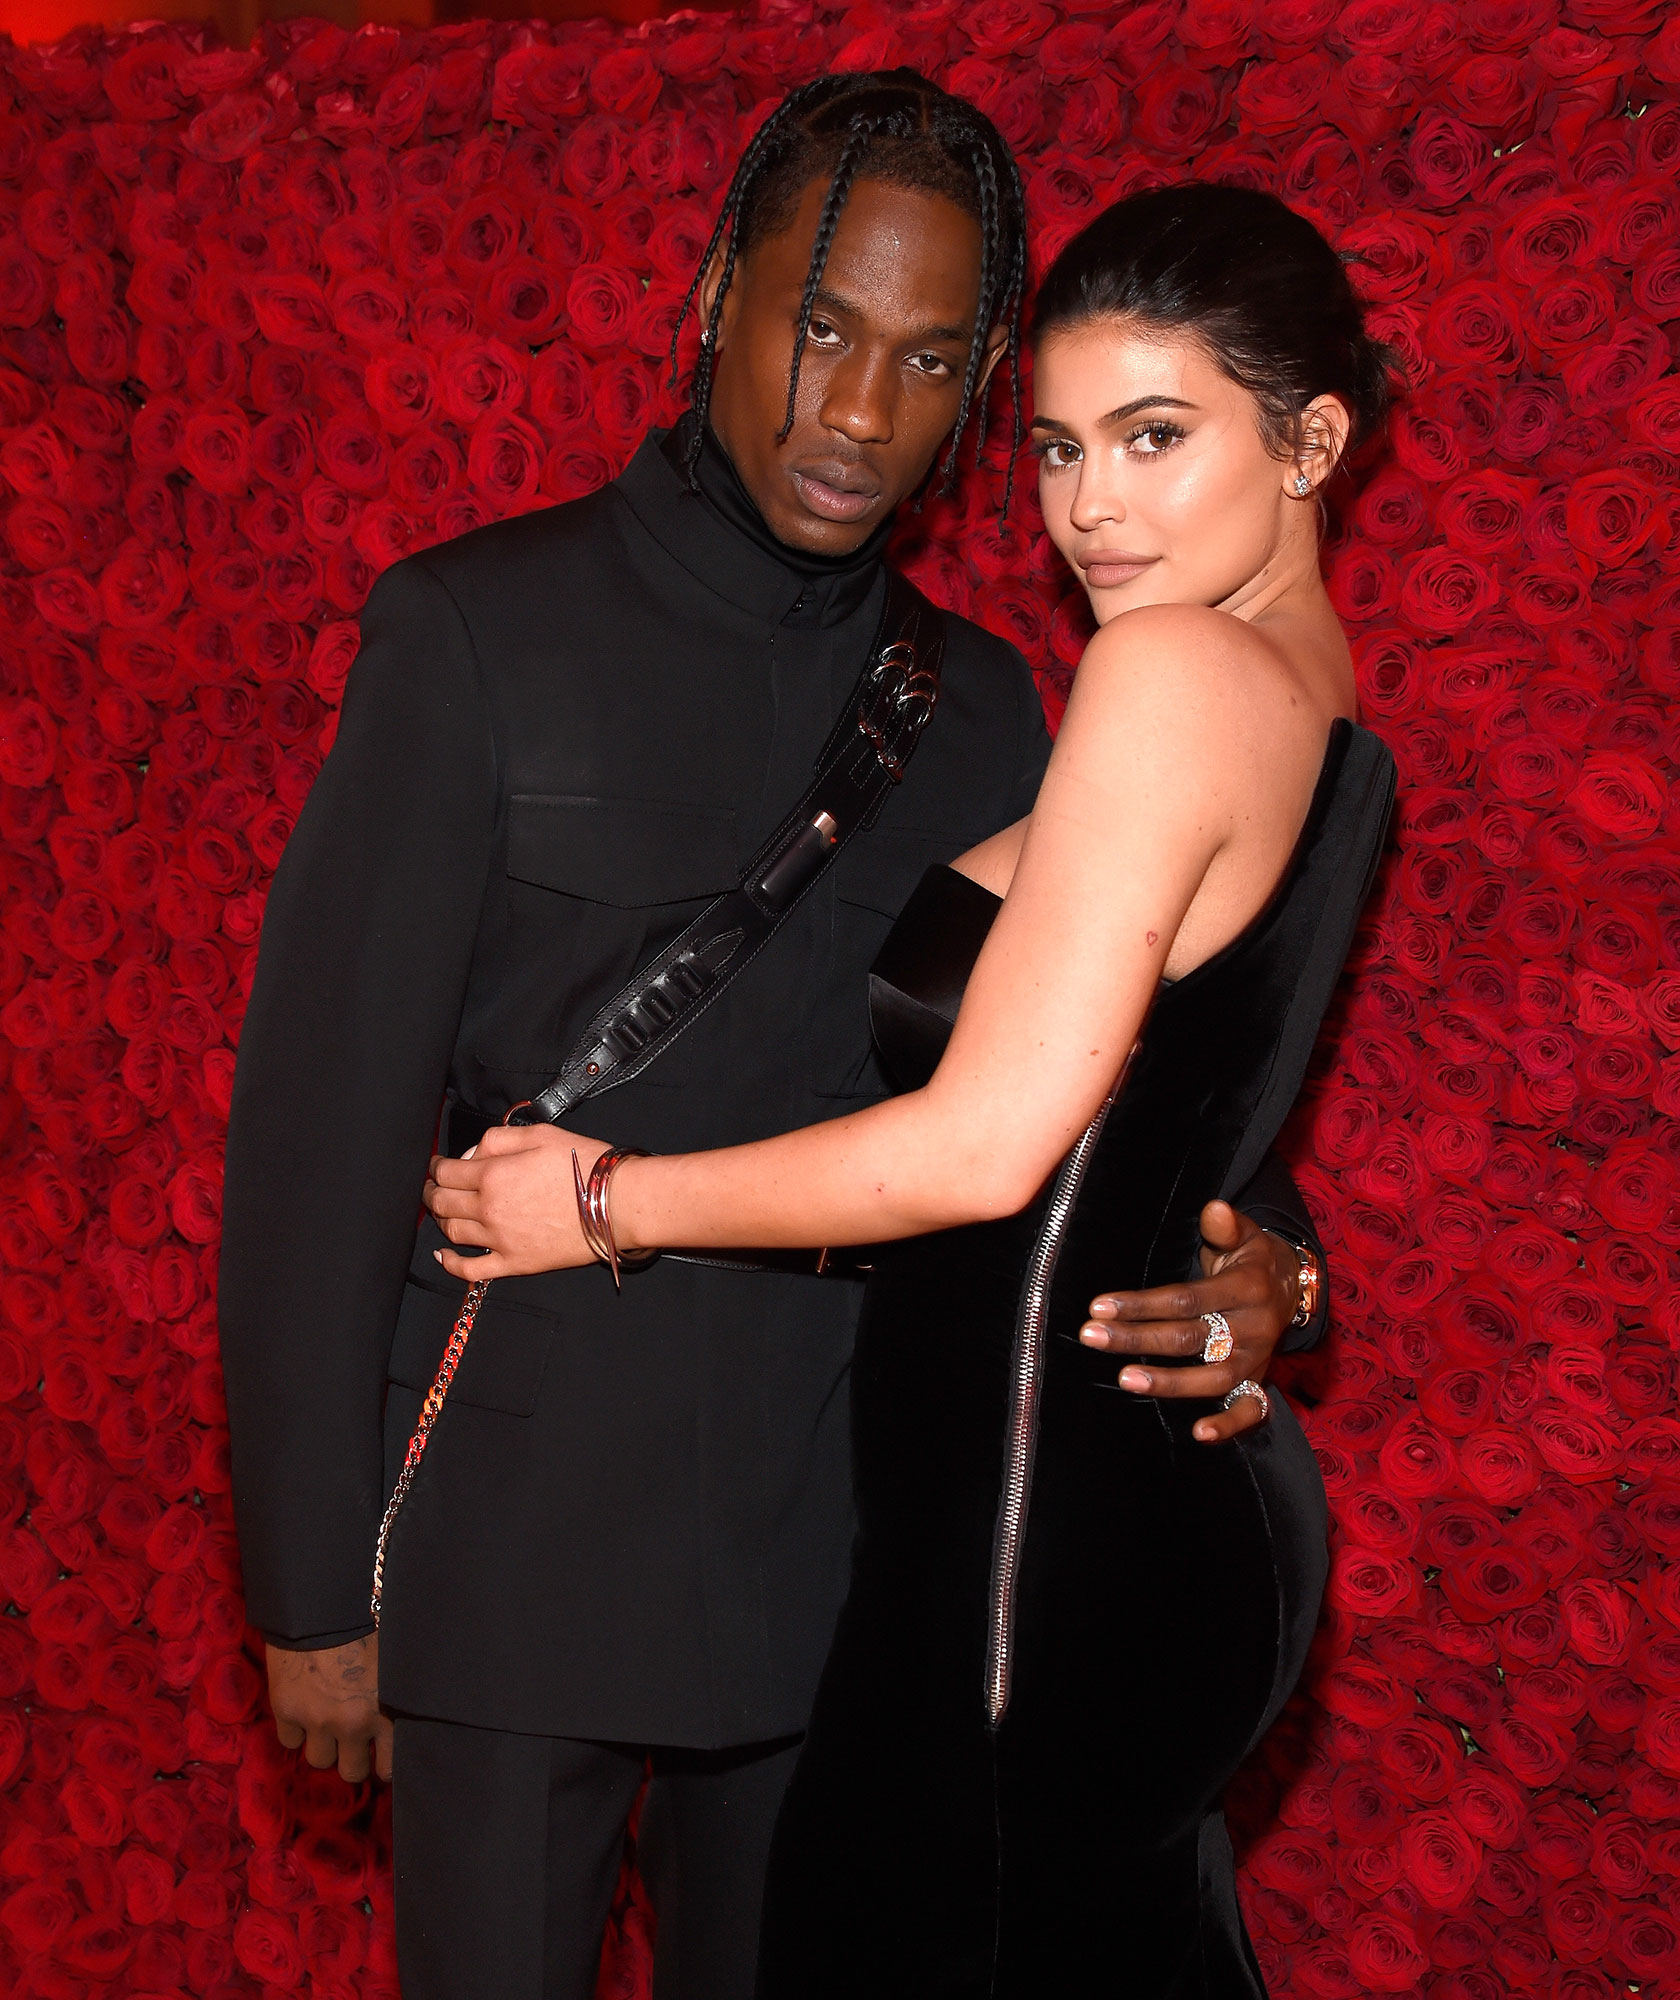 Kylie and Travis Sweetest Quotes - Travis Scott and Kylie Jenner attend the Heavenly Bodies: Fashion & The Catholic Imagination Costume Institute Gala at The Metropolitan Museum of Art on May 7, 2018 in New York City.